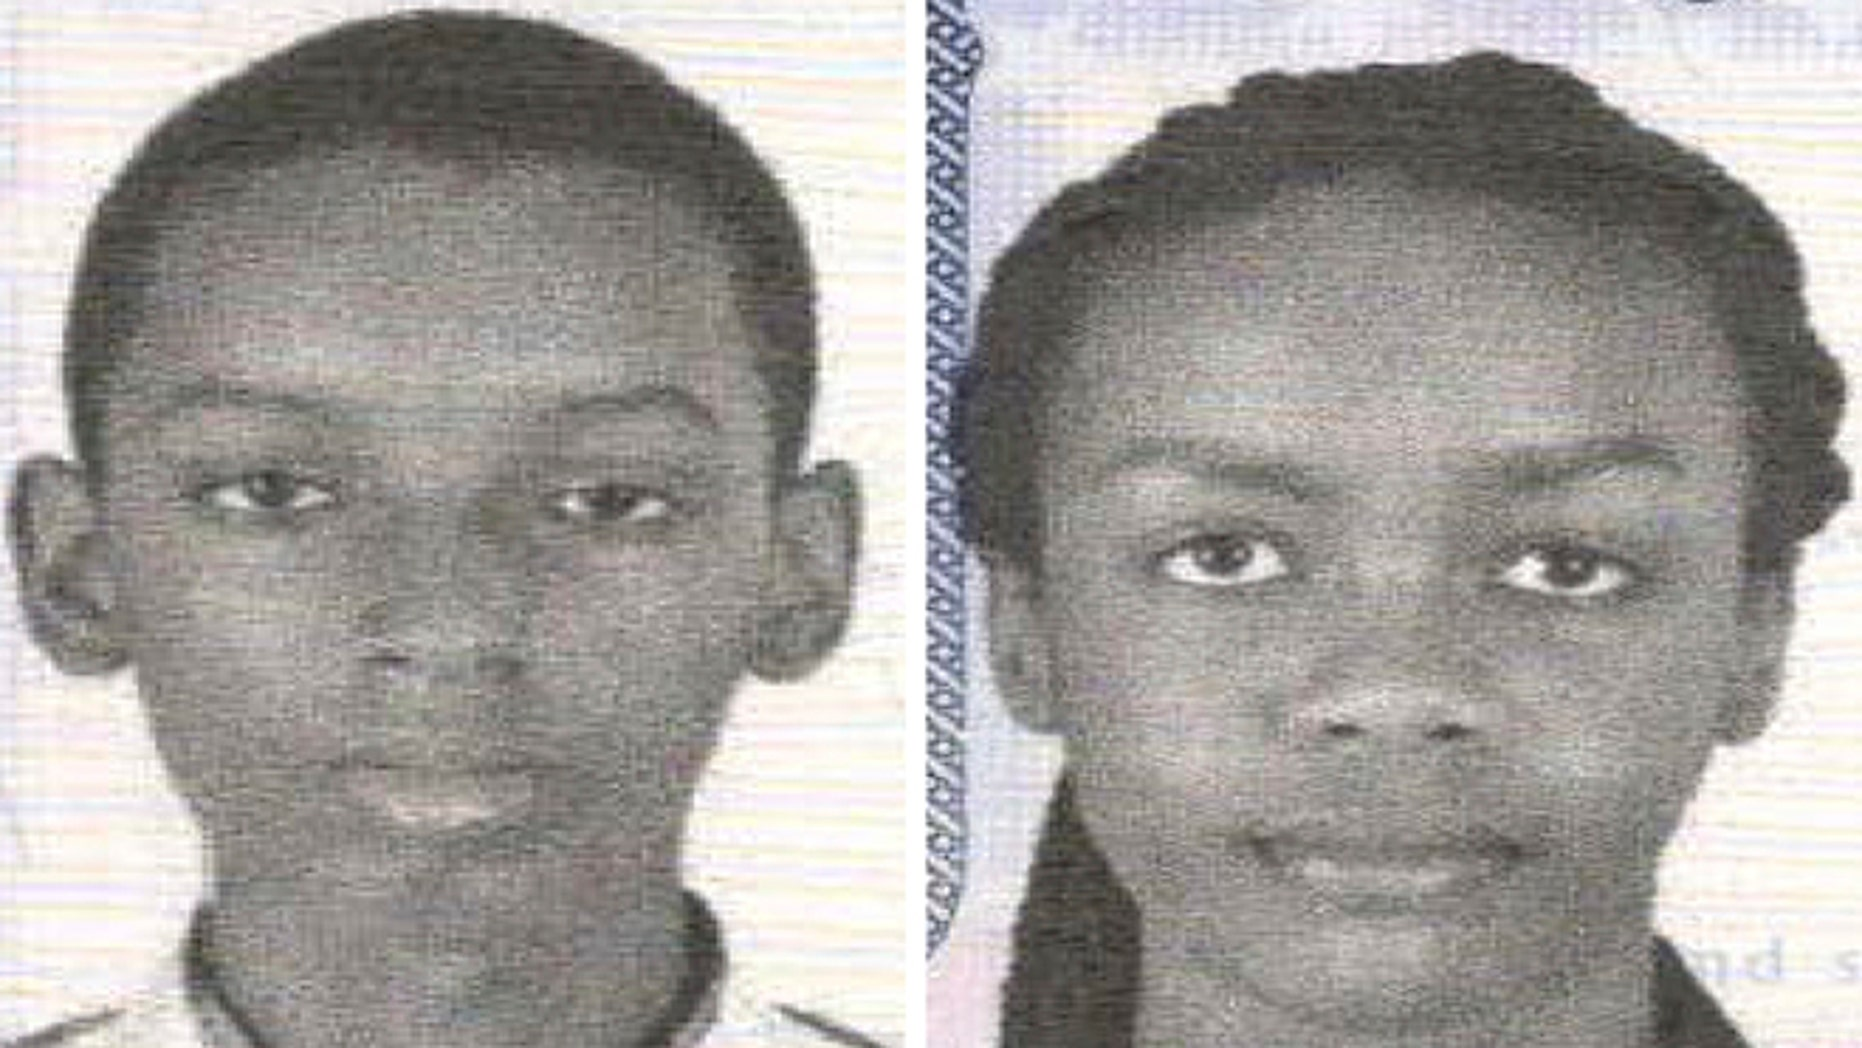 Don Ingabire and Audrey Mwamikazi were found safe after the vanished, police said.